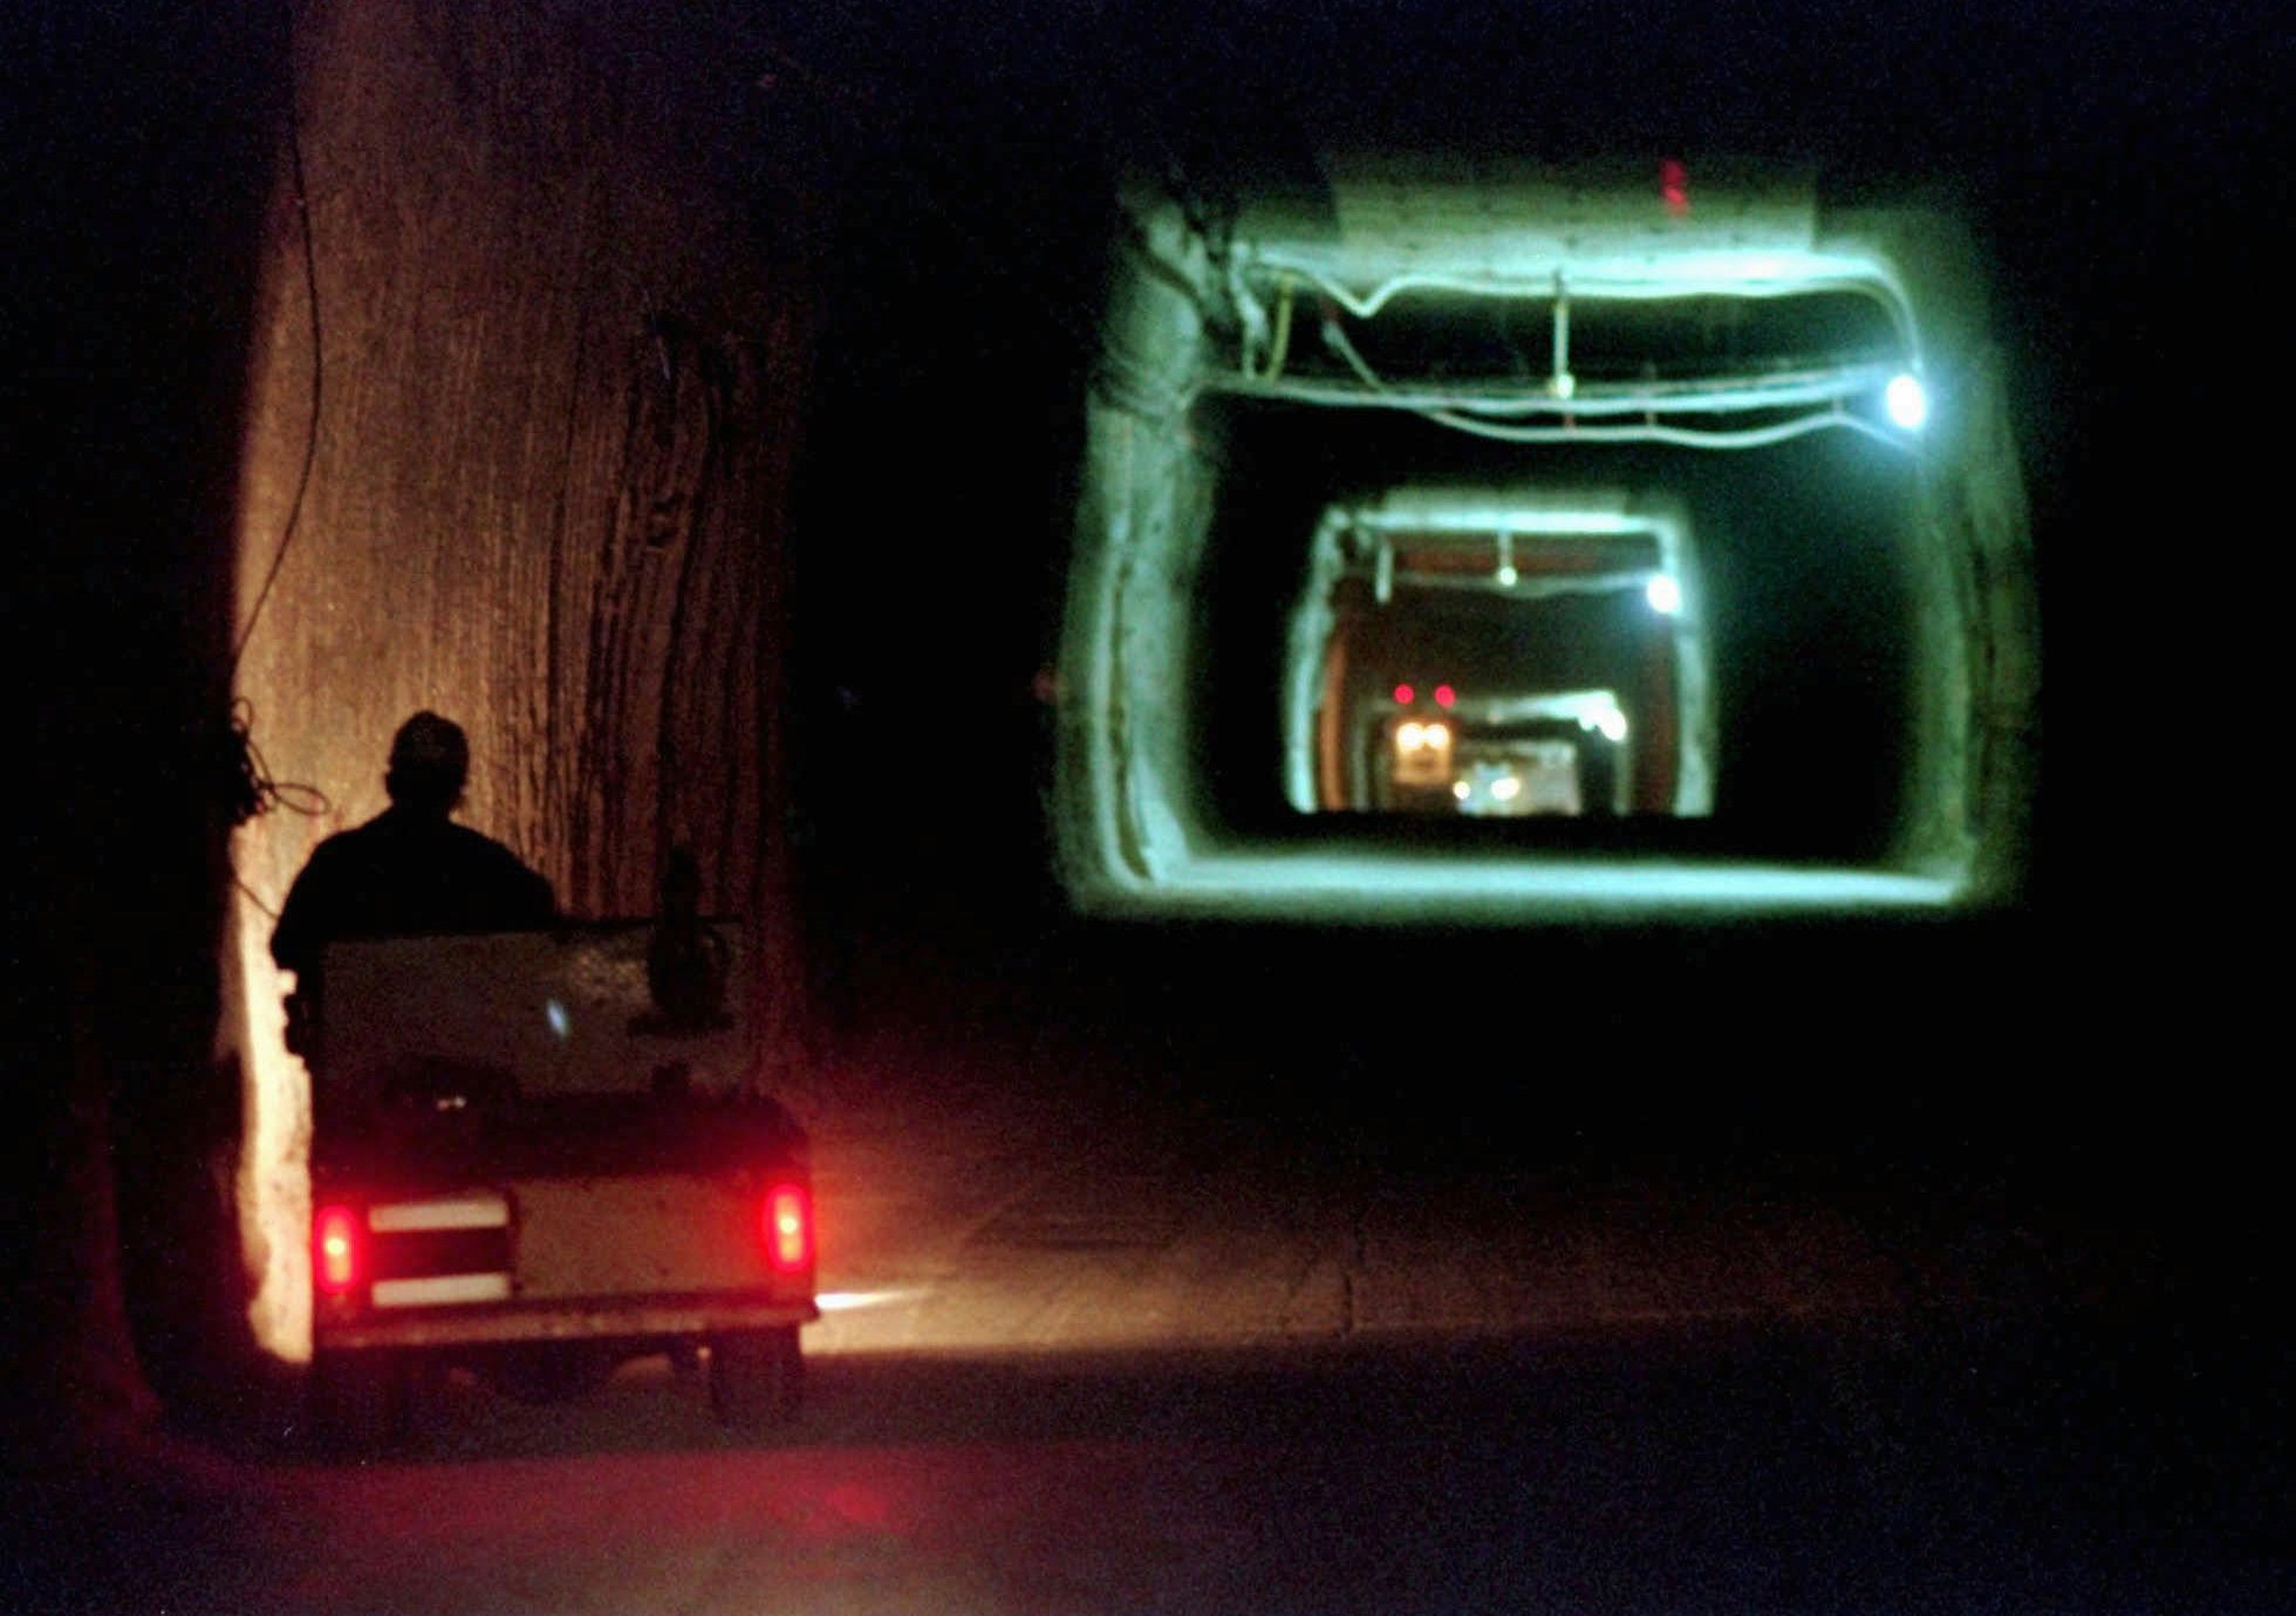 First-of-its-kind U.S. nuclear waste dump marks 20 years